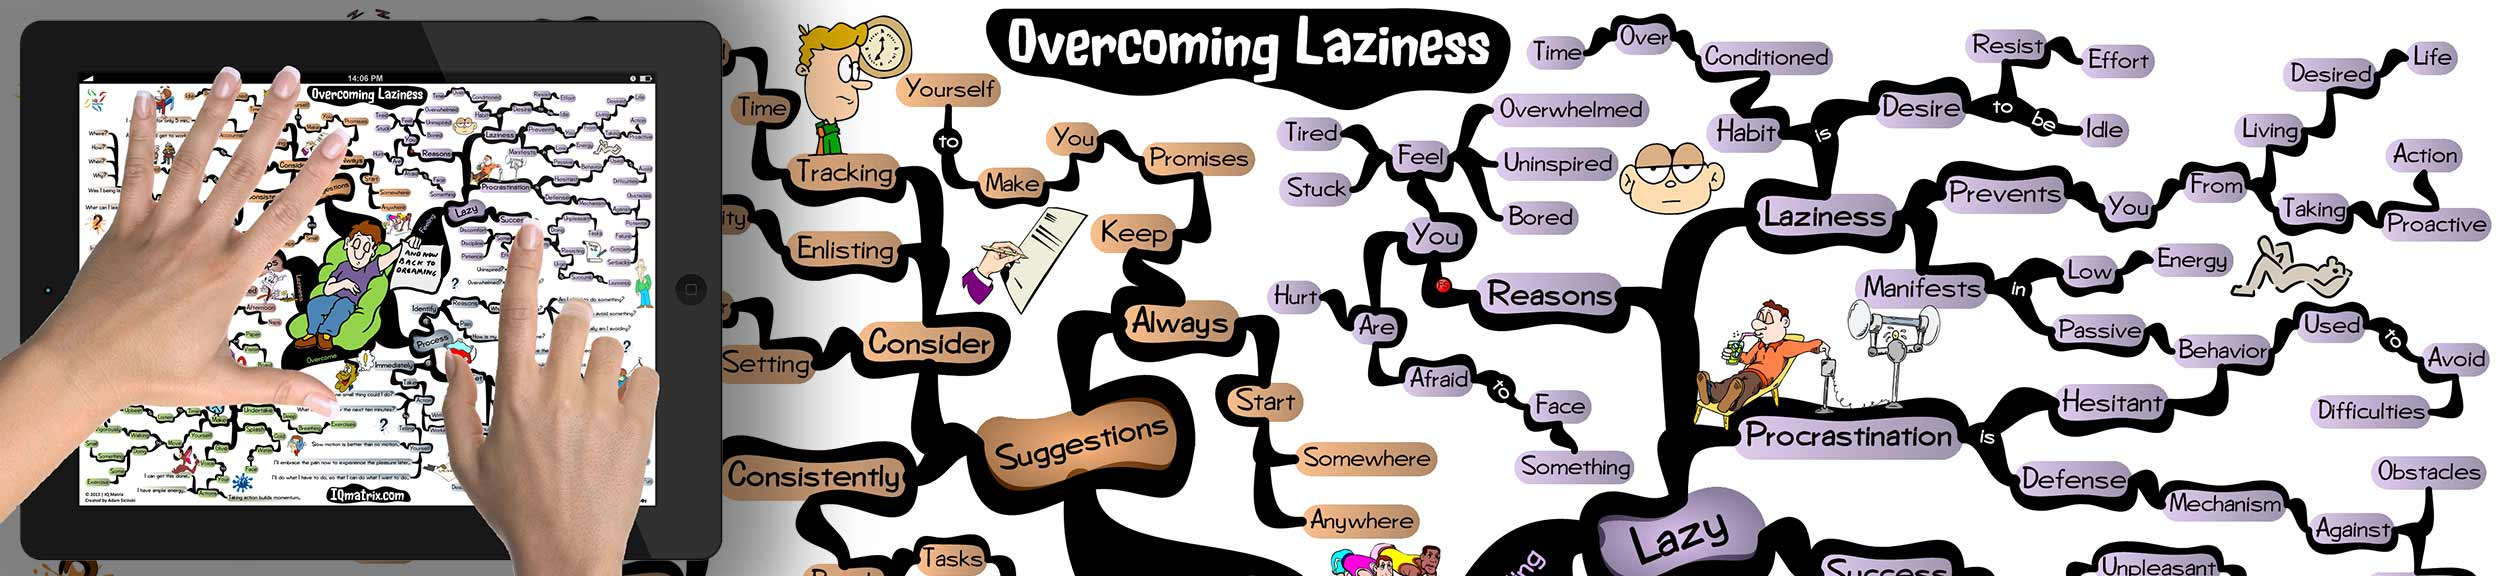 Three kinds of laziness - recognize yourself 87